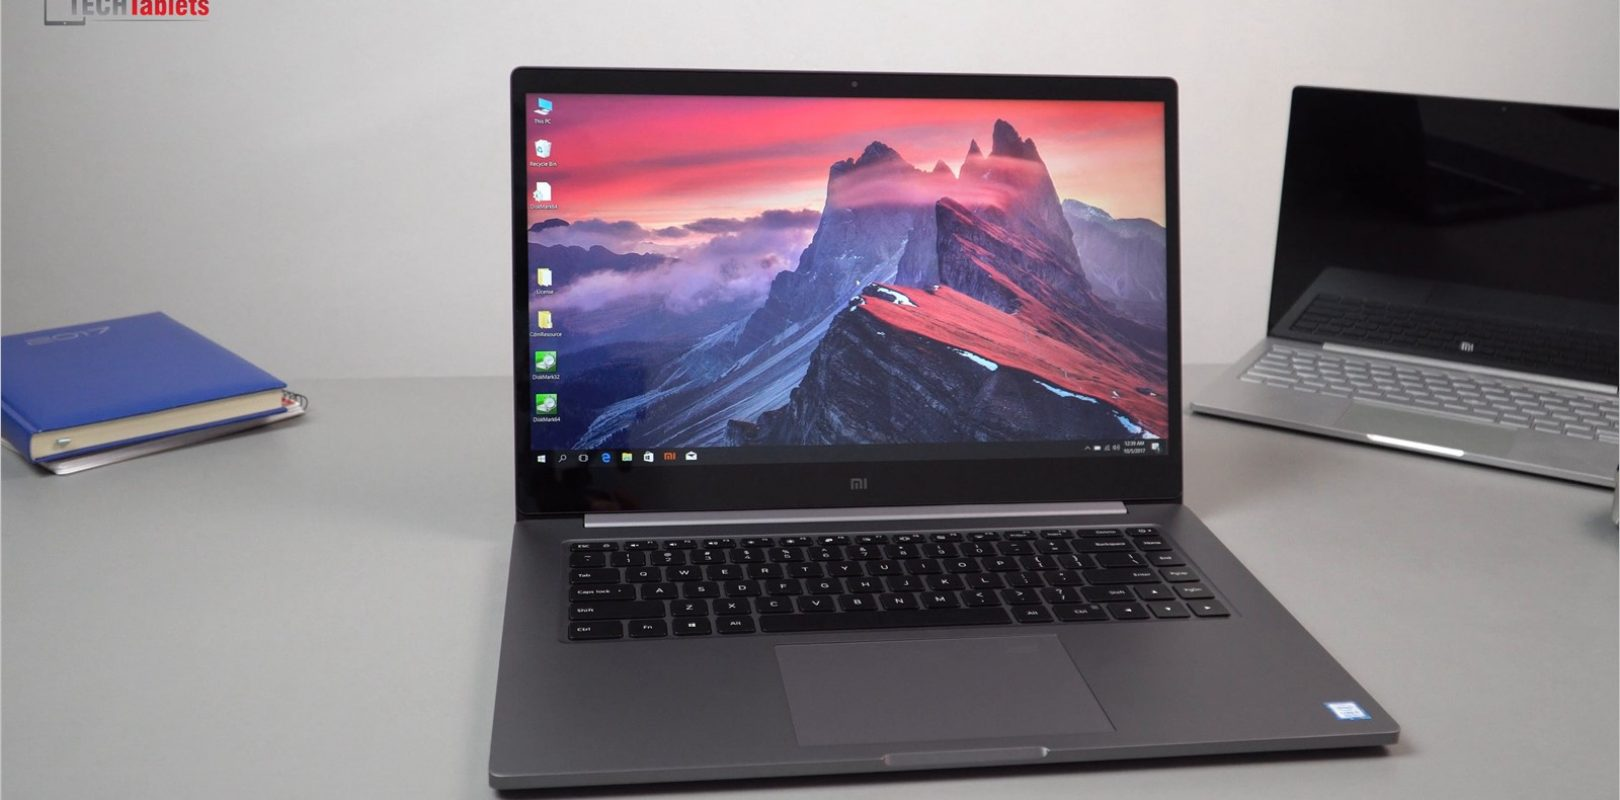 Xiaomi Mi Notebook Pro Drivers, Bios Updates & Win 10 Images